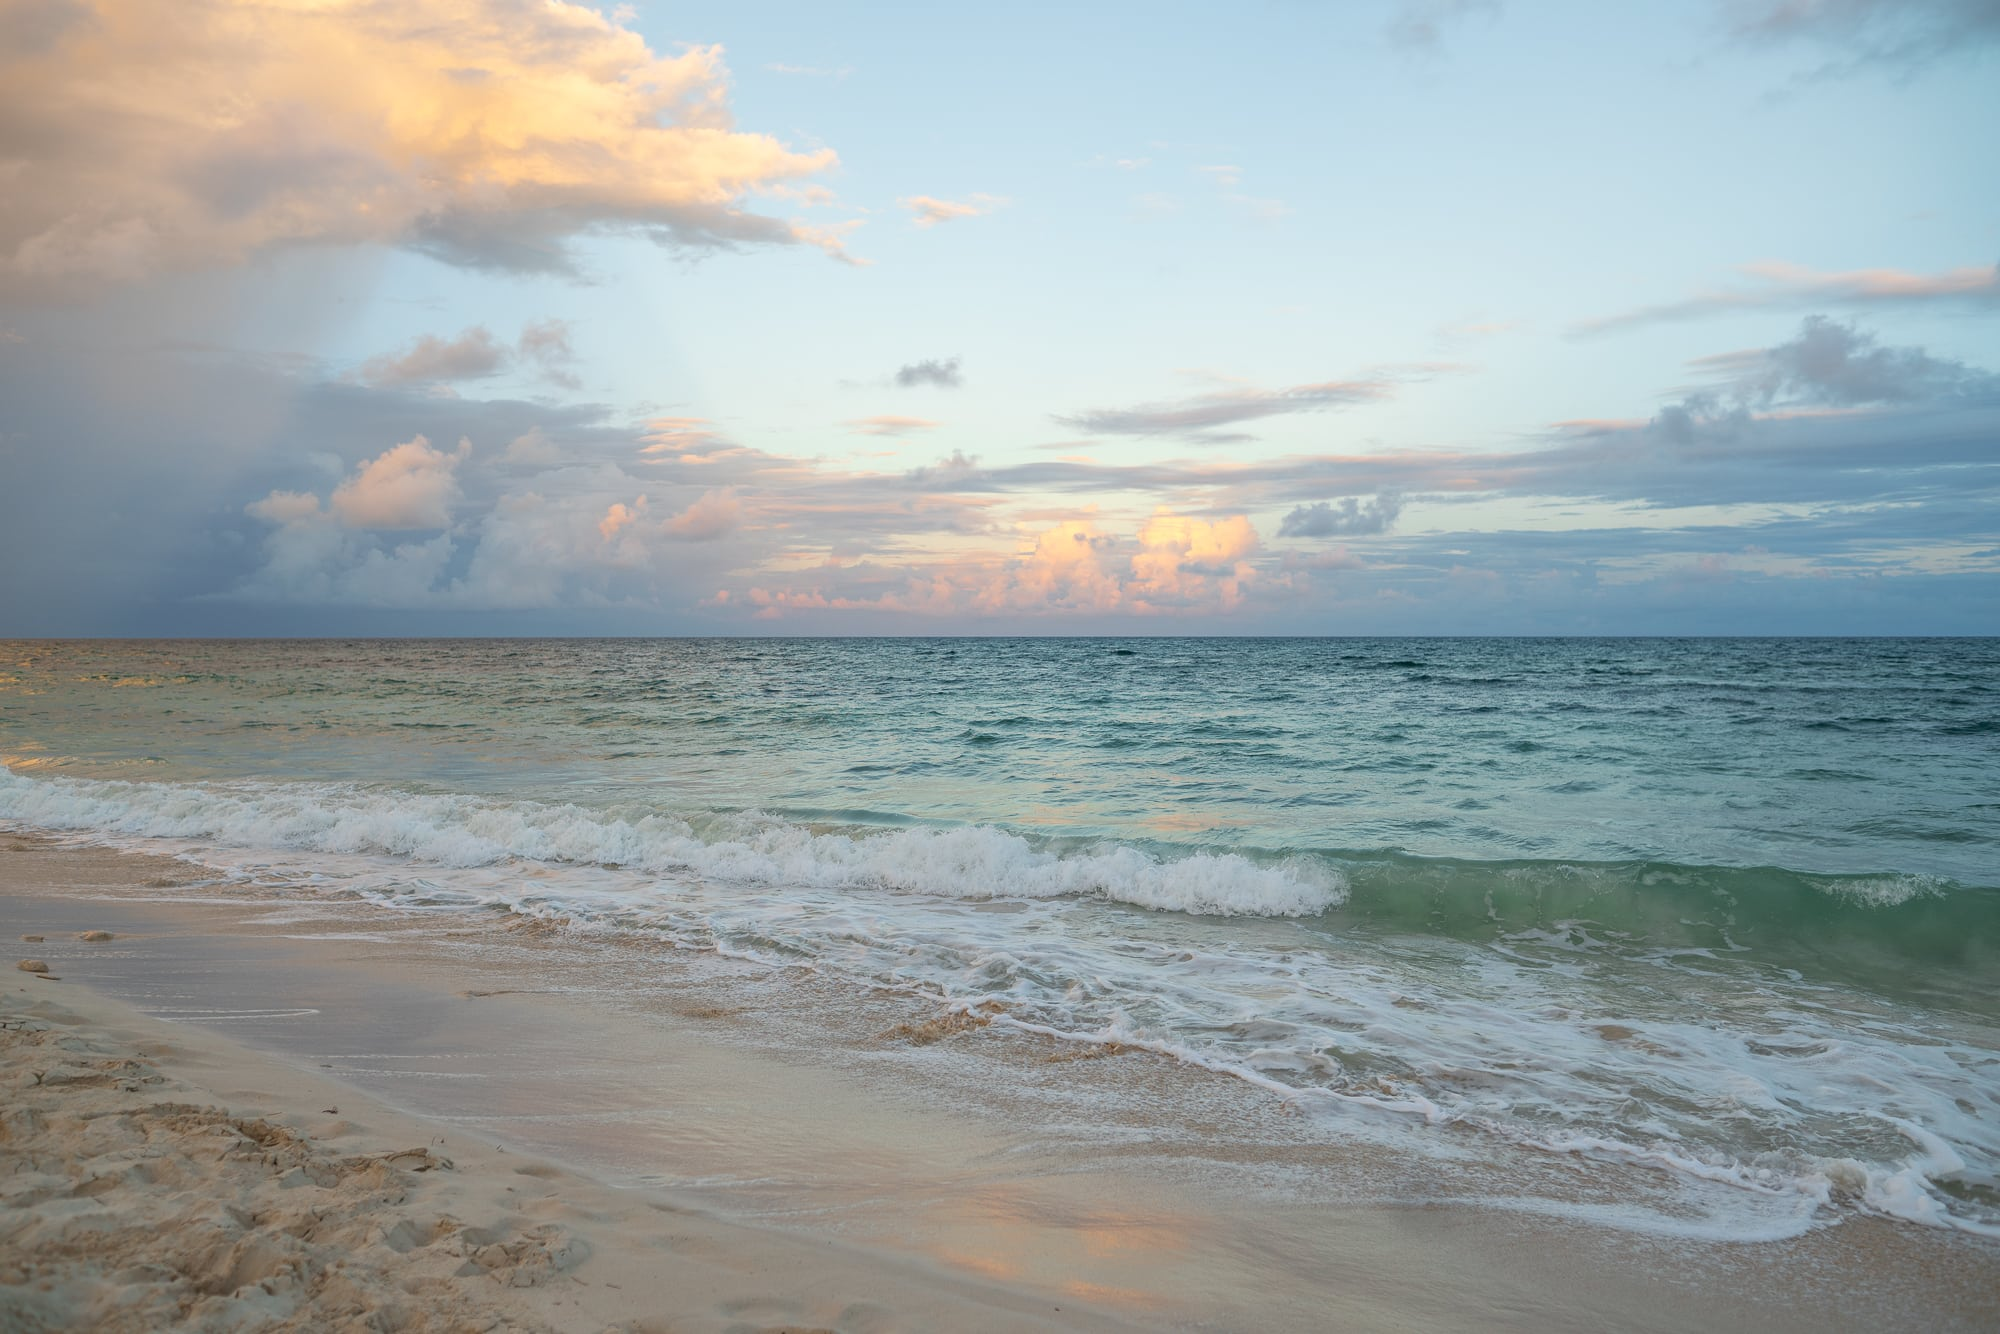 Tulum's turquoise waters at sunset